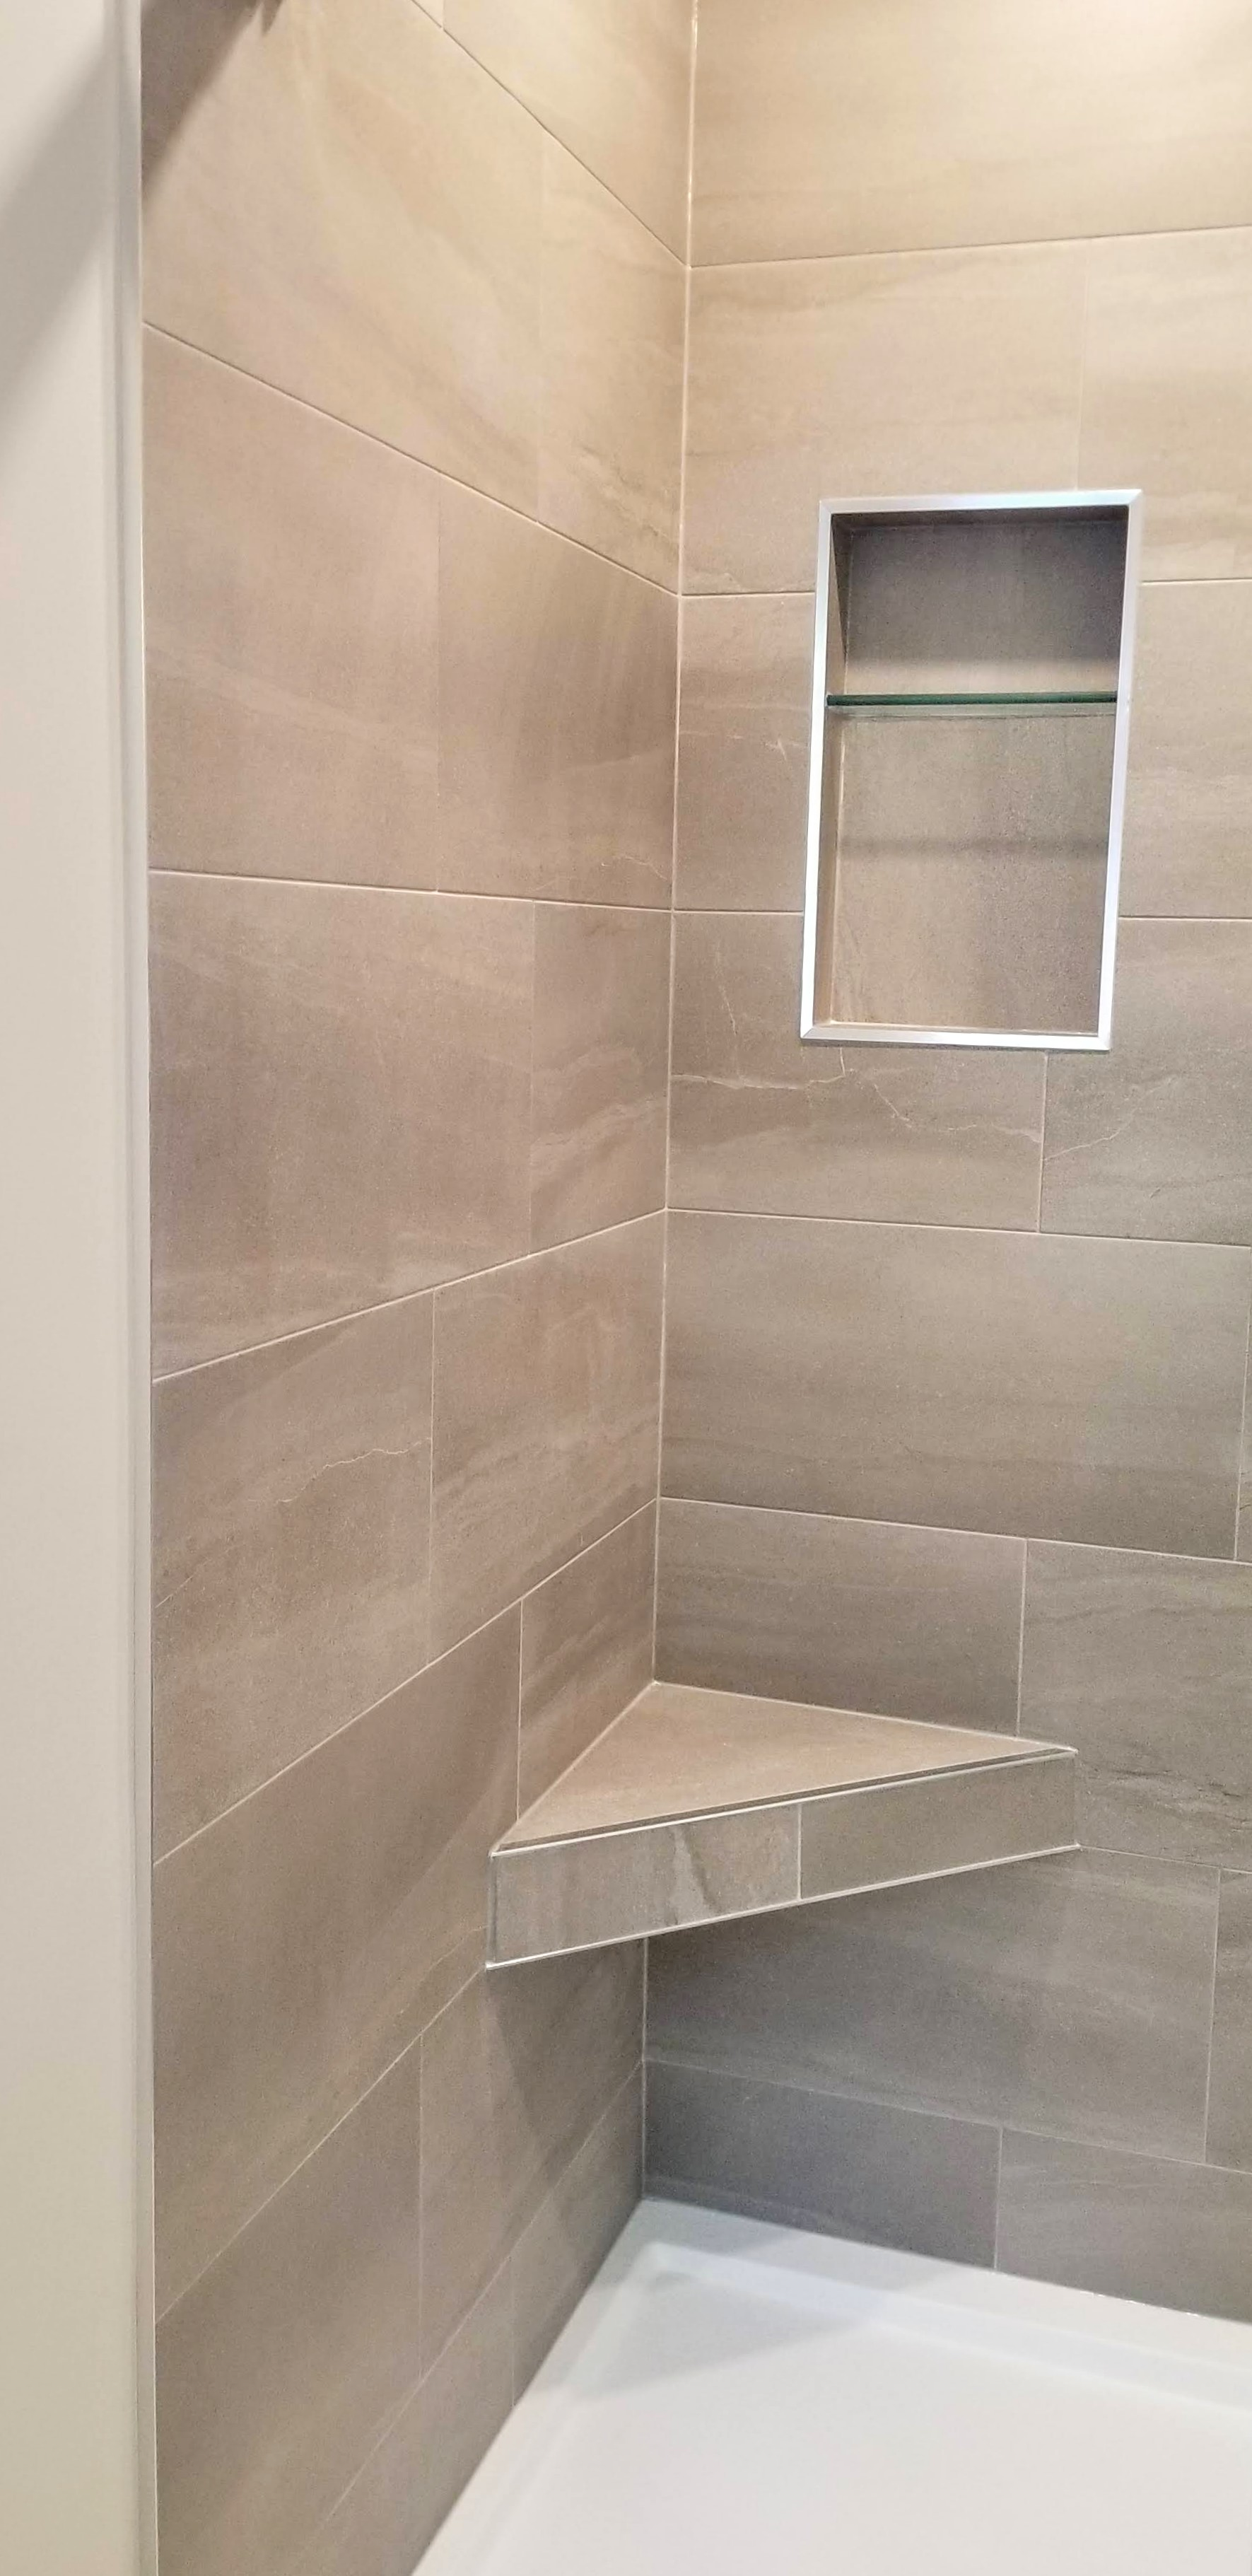 Tiled floating shower bench in tiled shower by Germano Creative Interior Contracting Ltd.